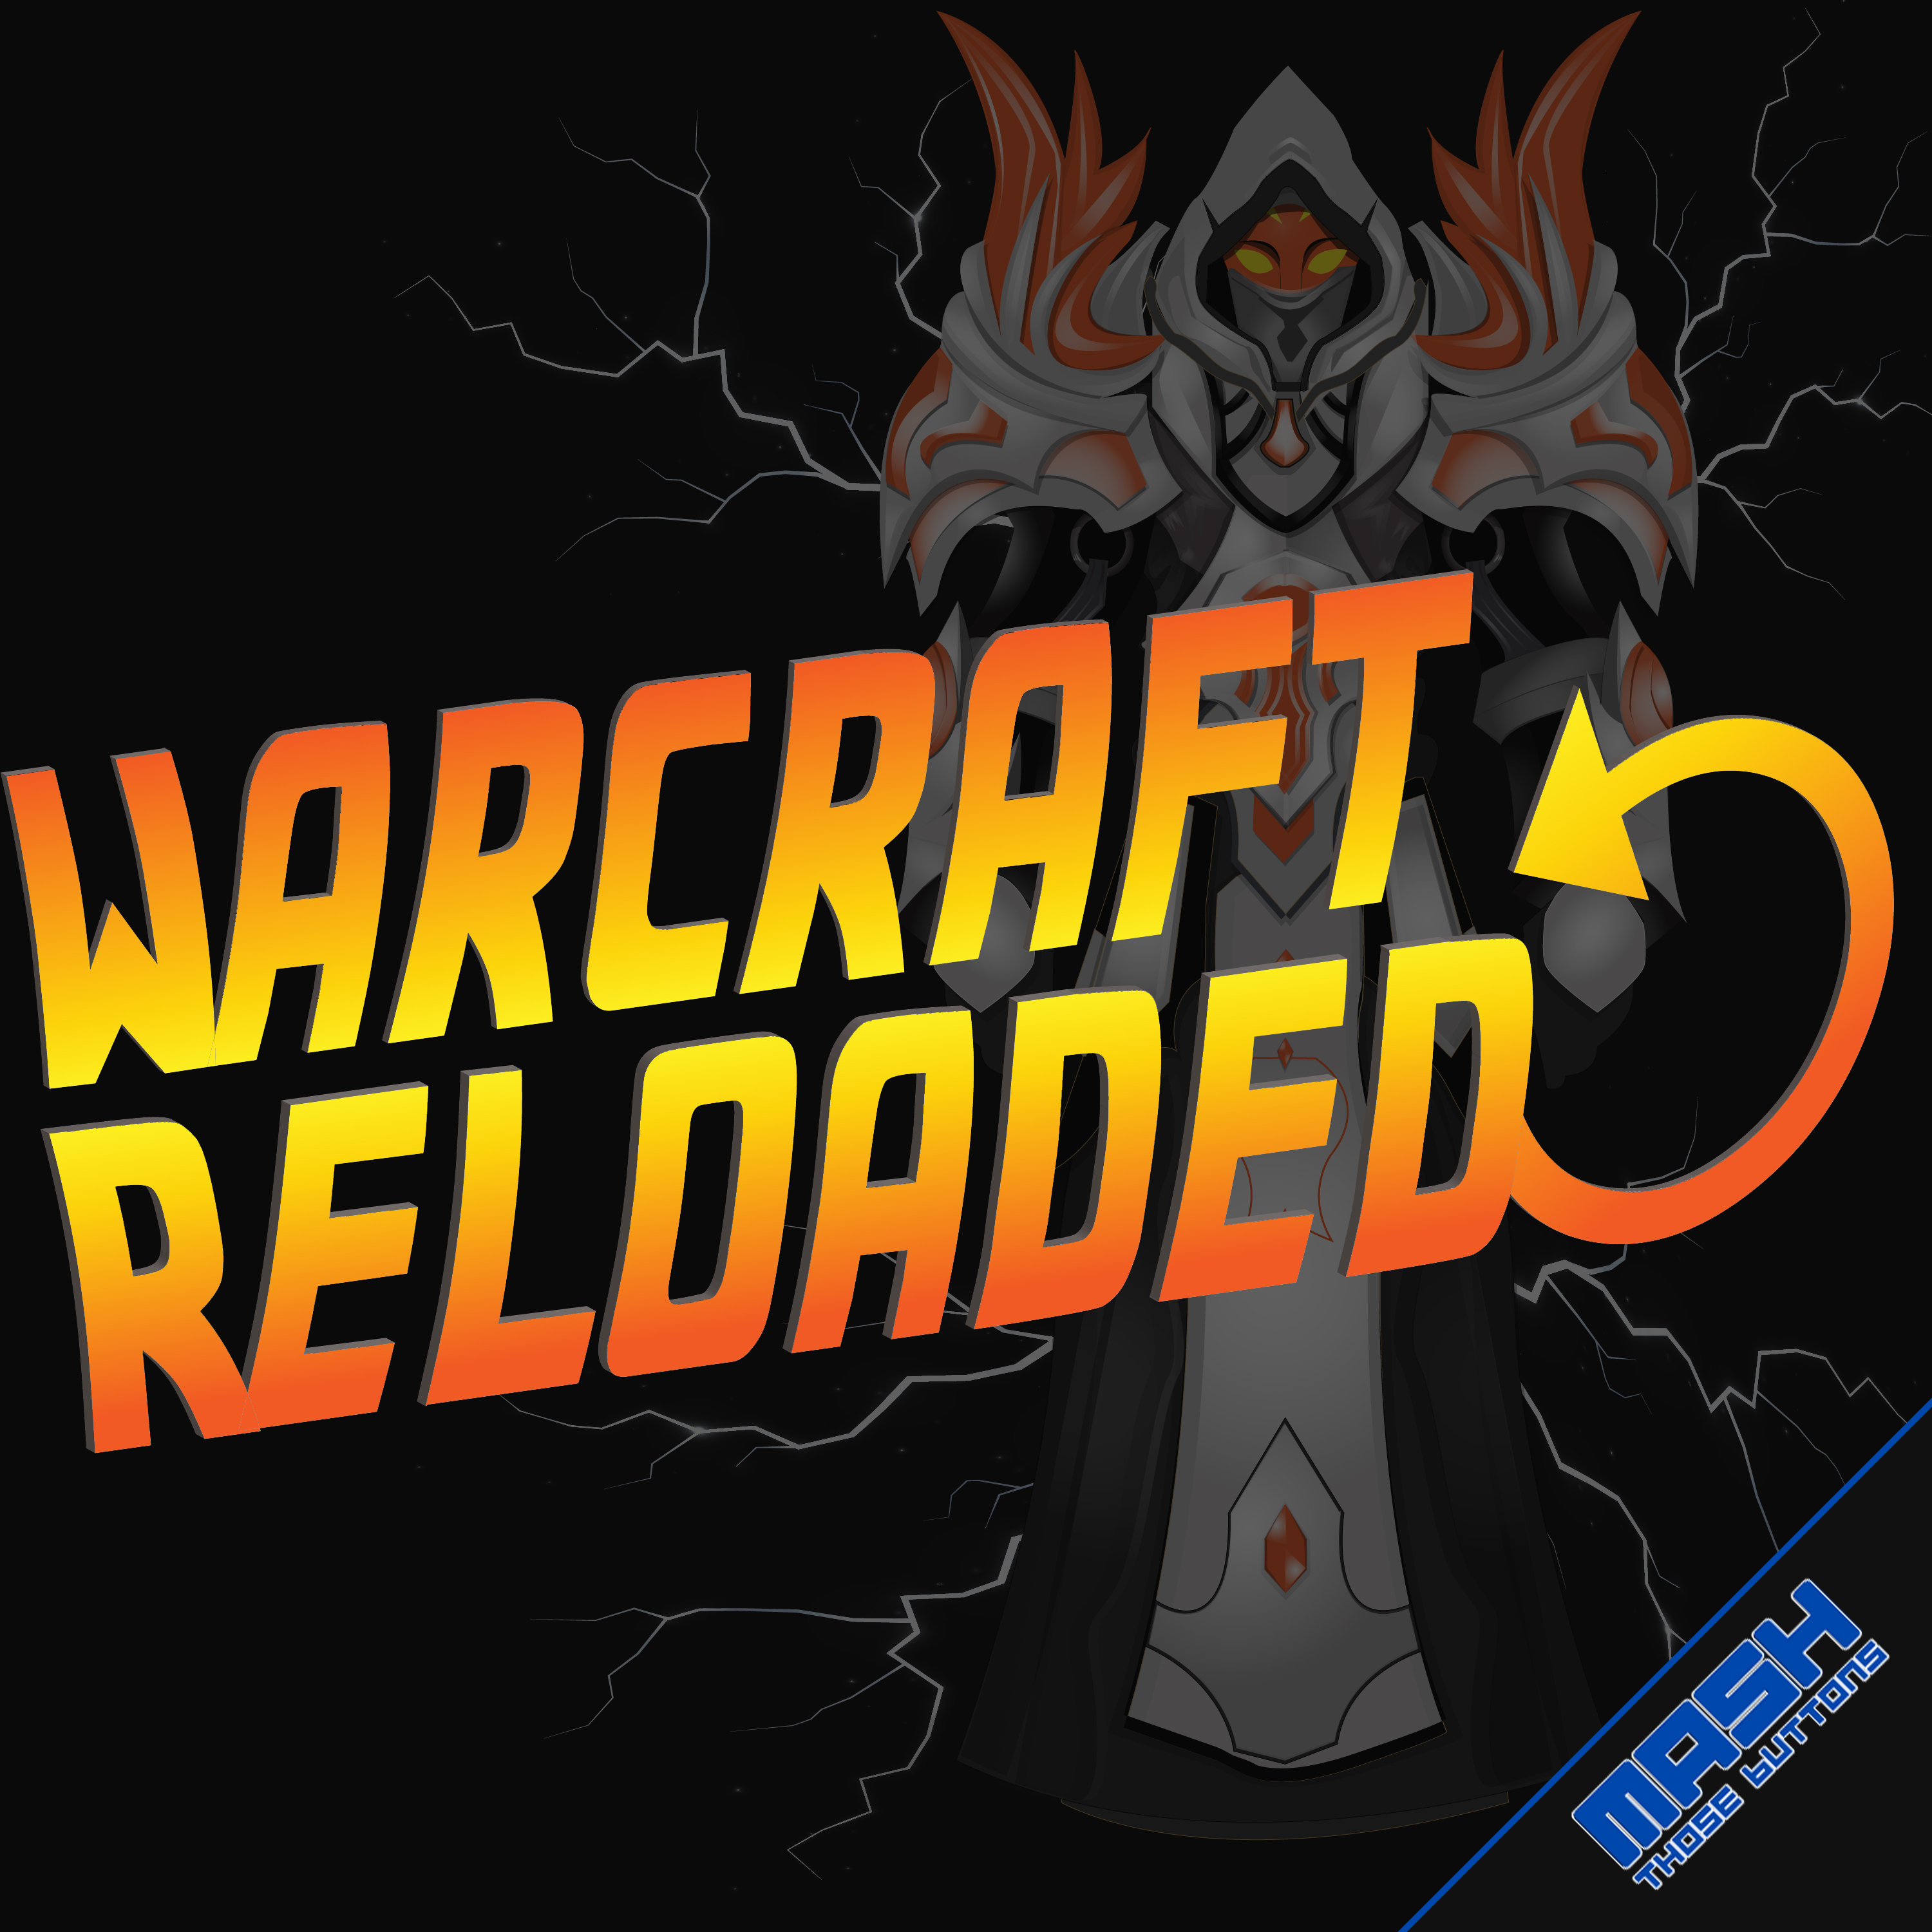 Warcraft Reloaded – WoW Classic and Community